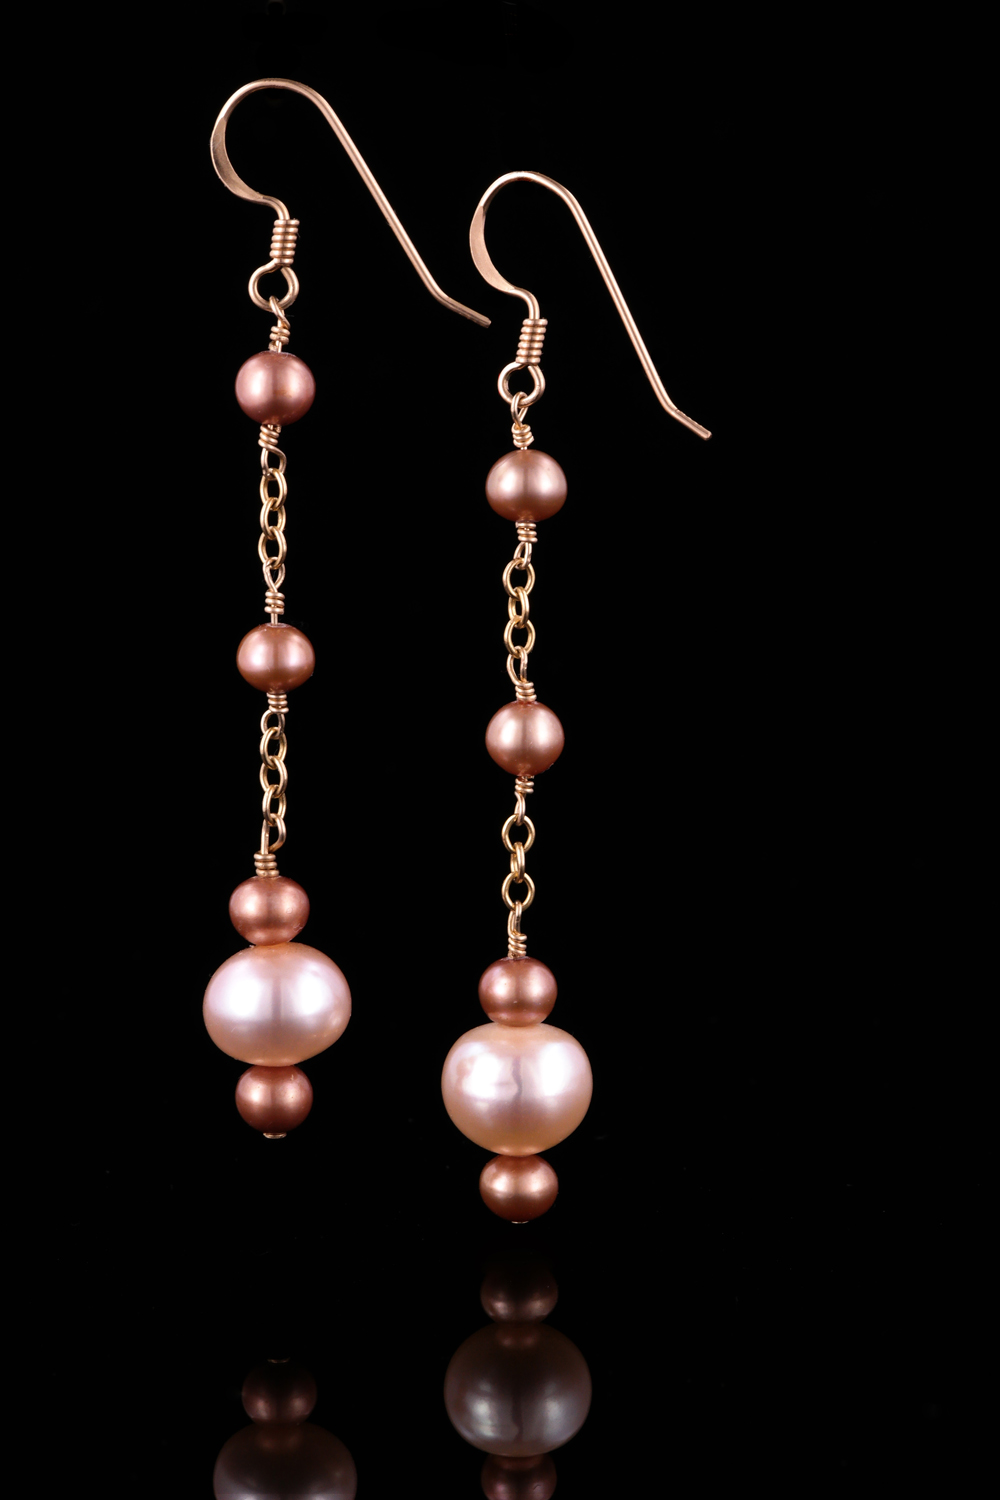 1202-Pink-bronze-pearl-dangle-earring-land-and-sea-jewelry-1